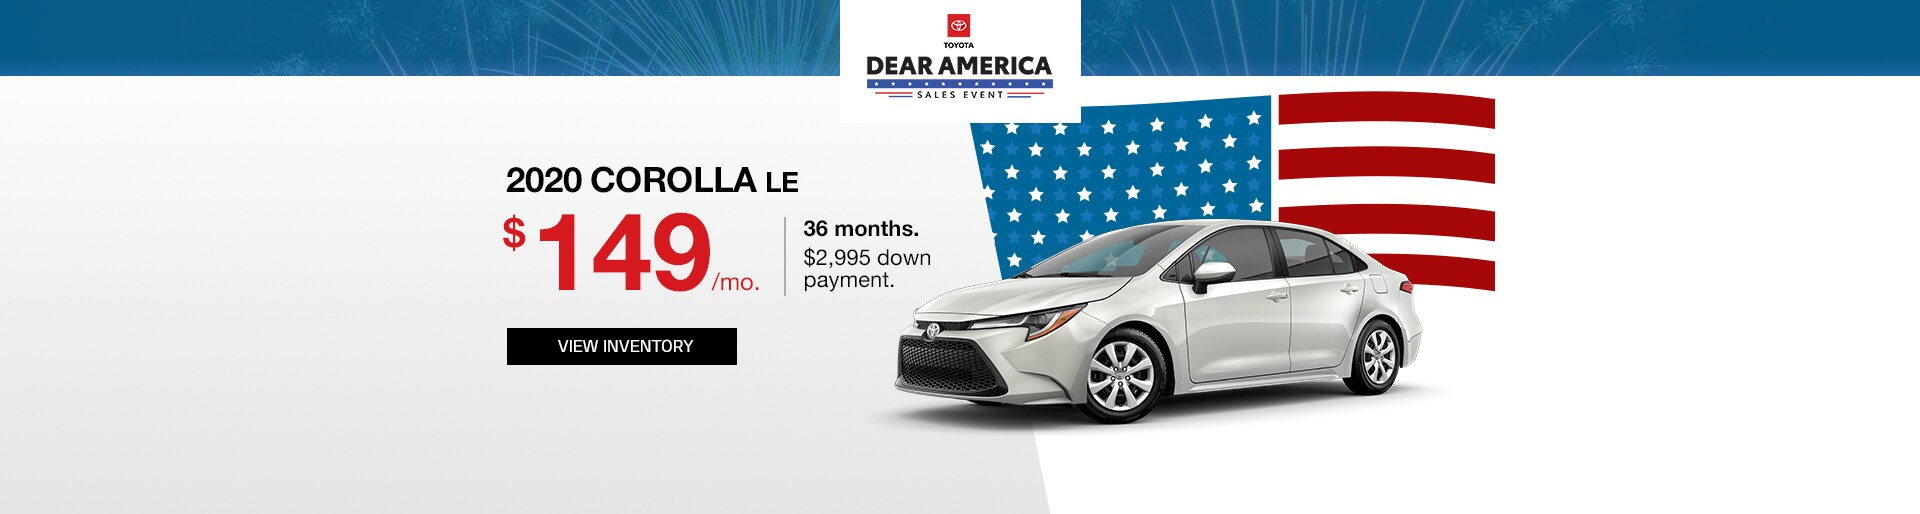 Toyota Dealers Rochester Ny >> Toyota Dealers Rochester Ny Upcoming New Car Release 2020